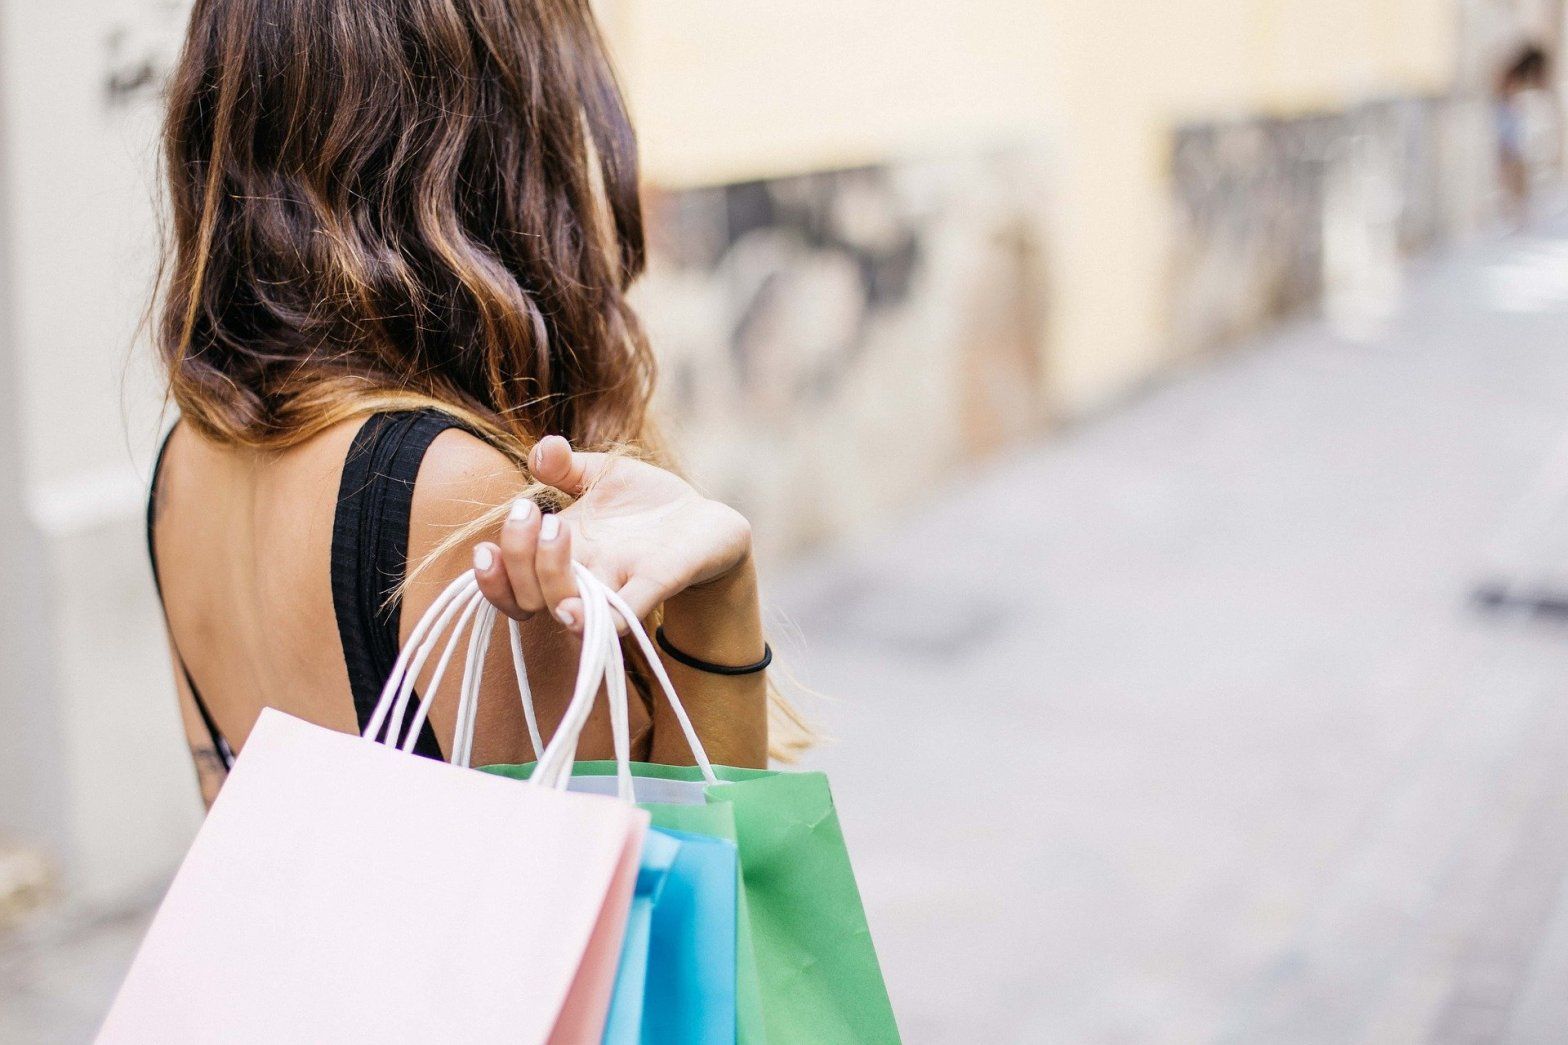 woman-with-shopping-bags-shopping-less